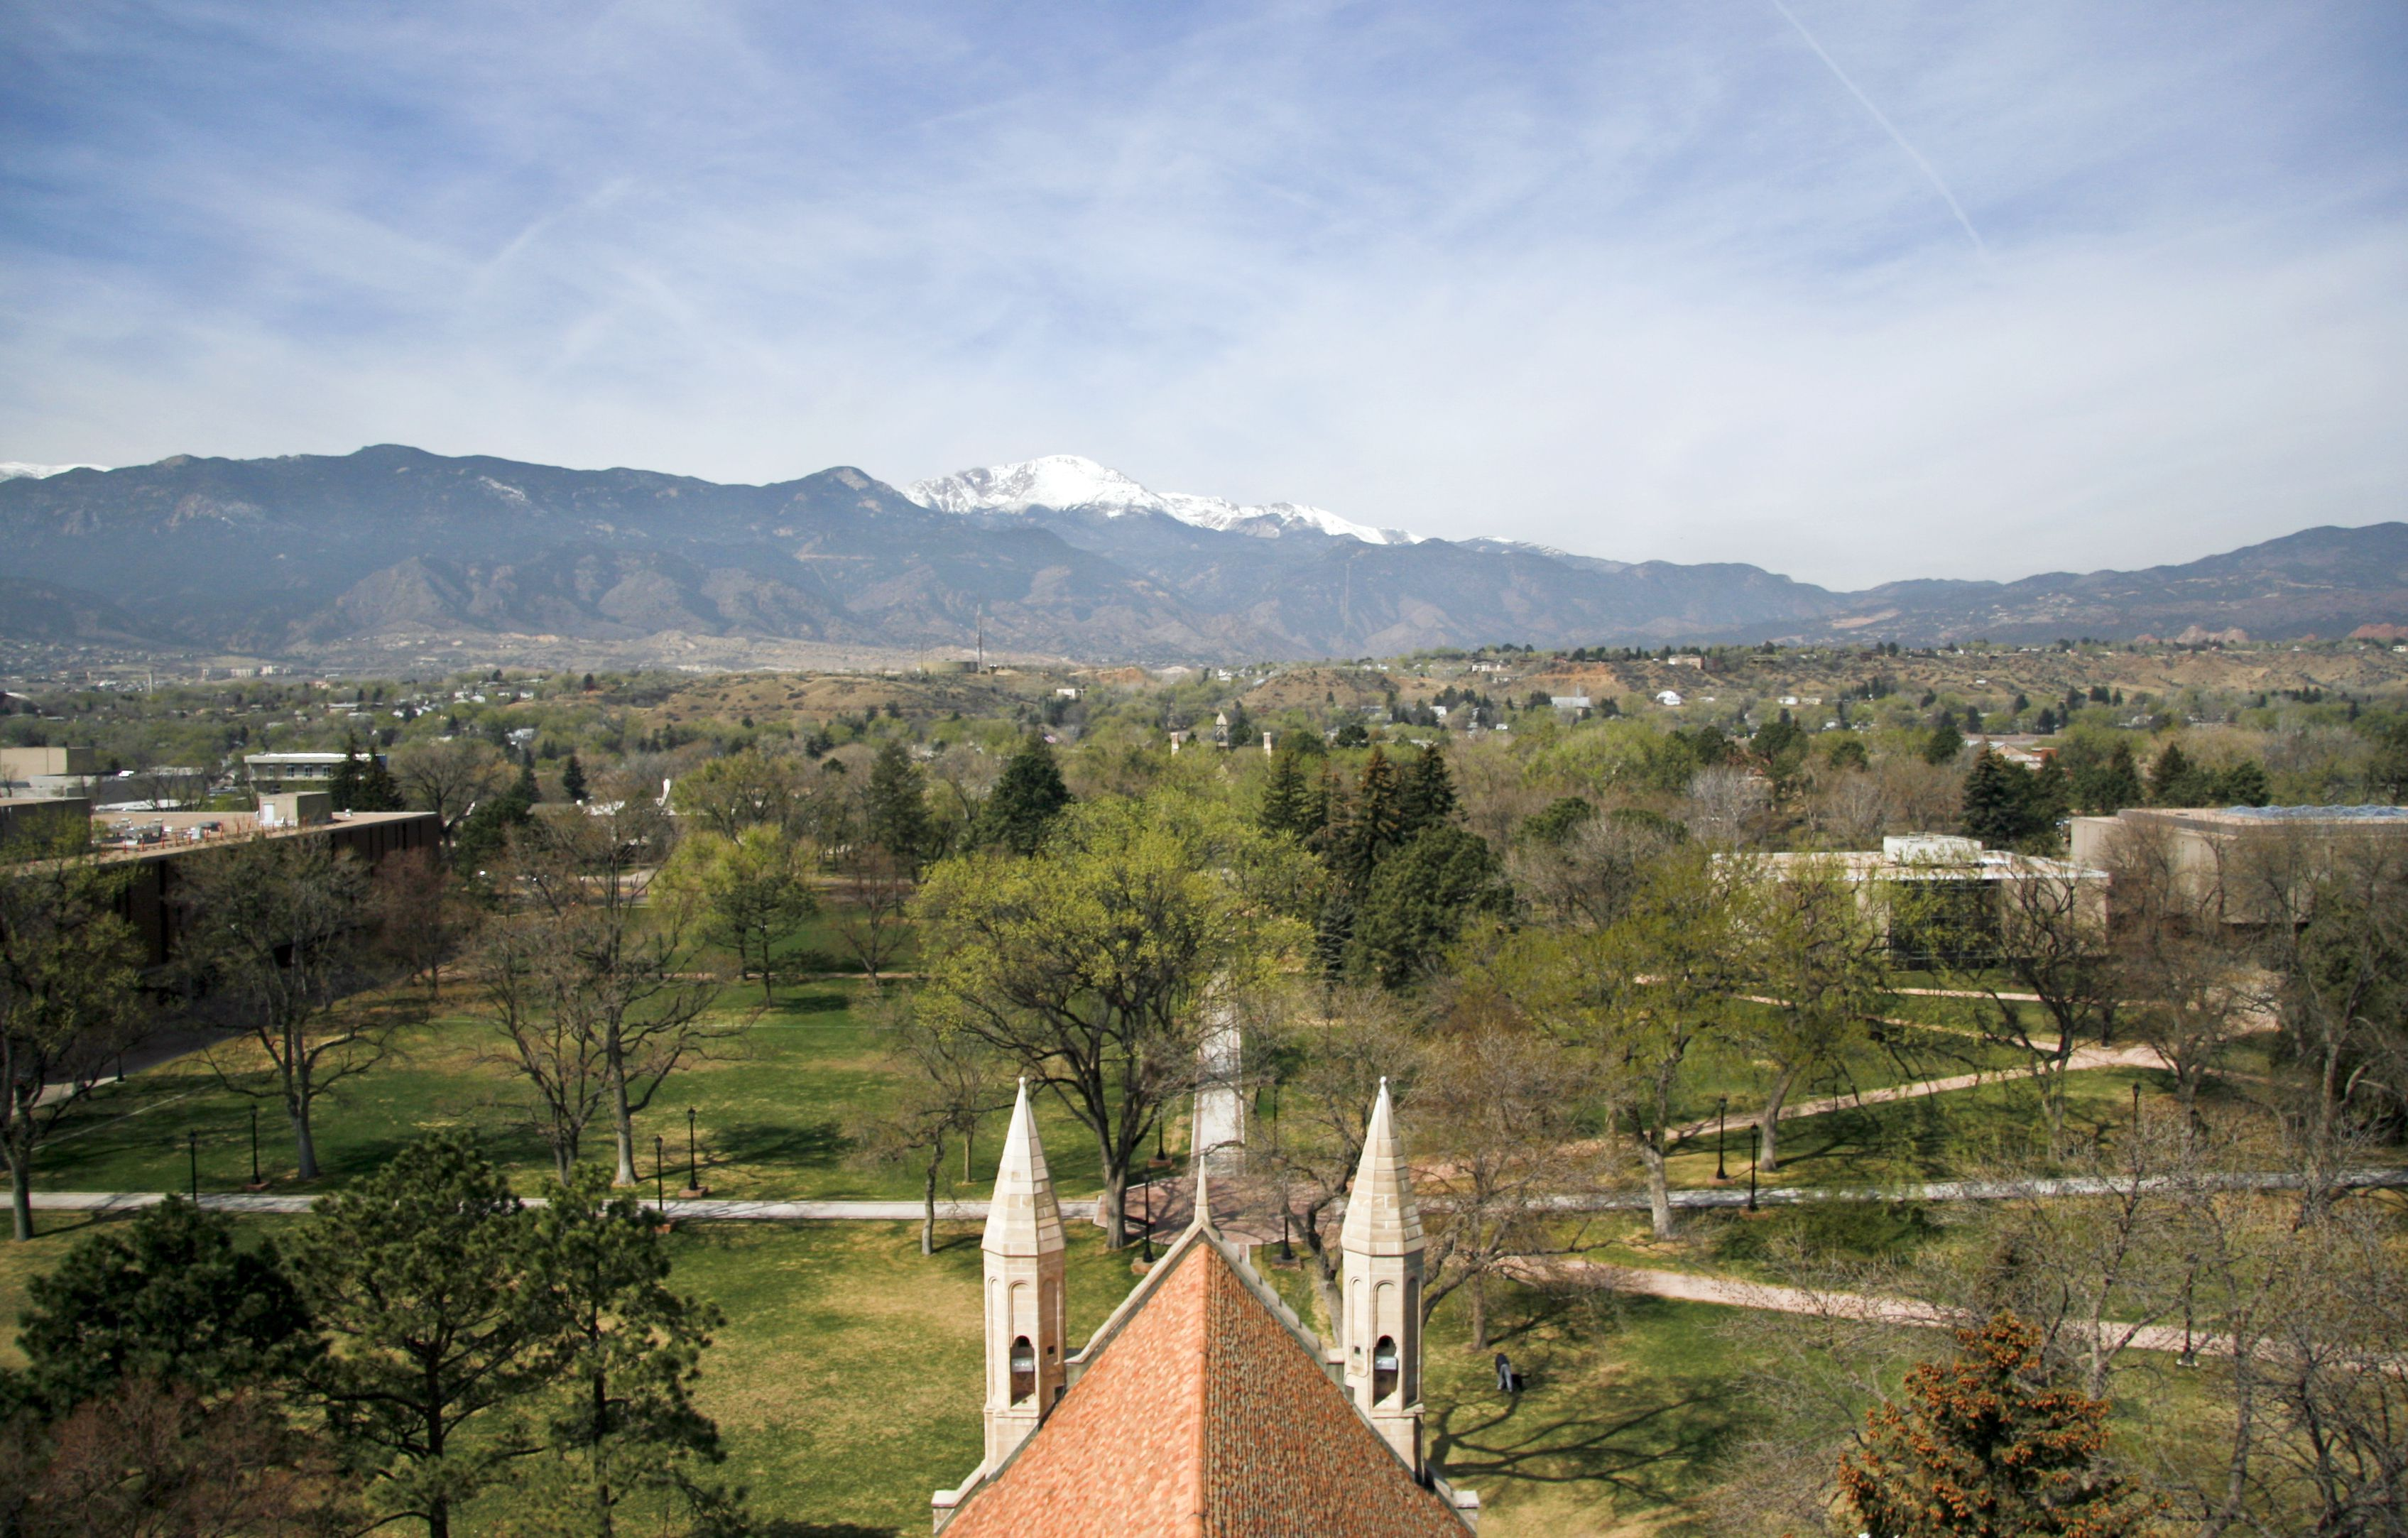 View of Colorado College from the top of Shove Memorial Chapel, showing the CC campus with Pikes Peak in the background